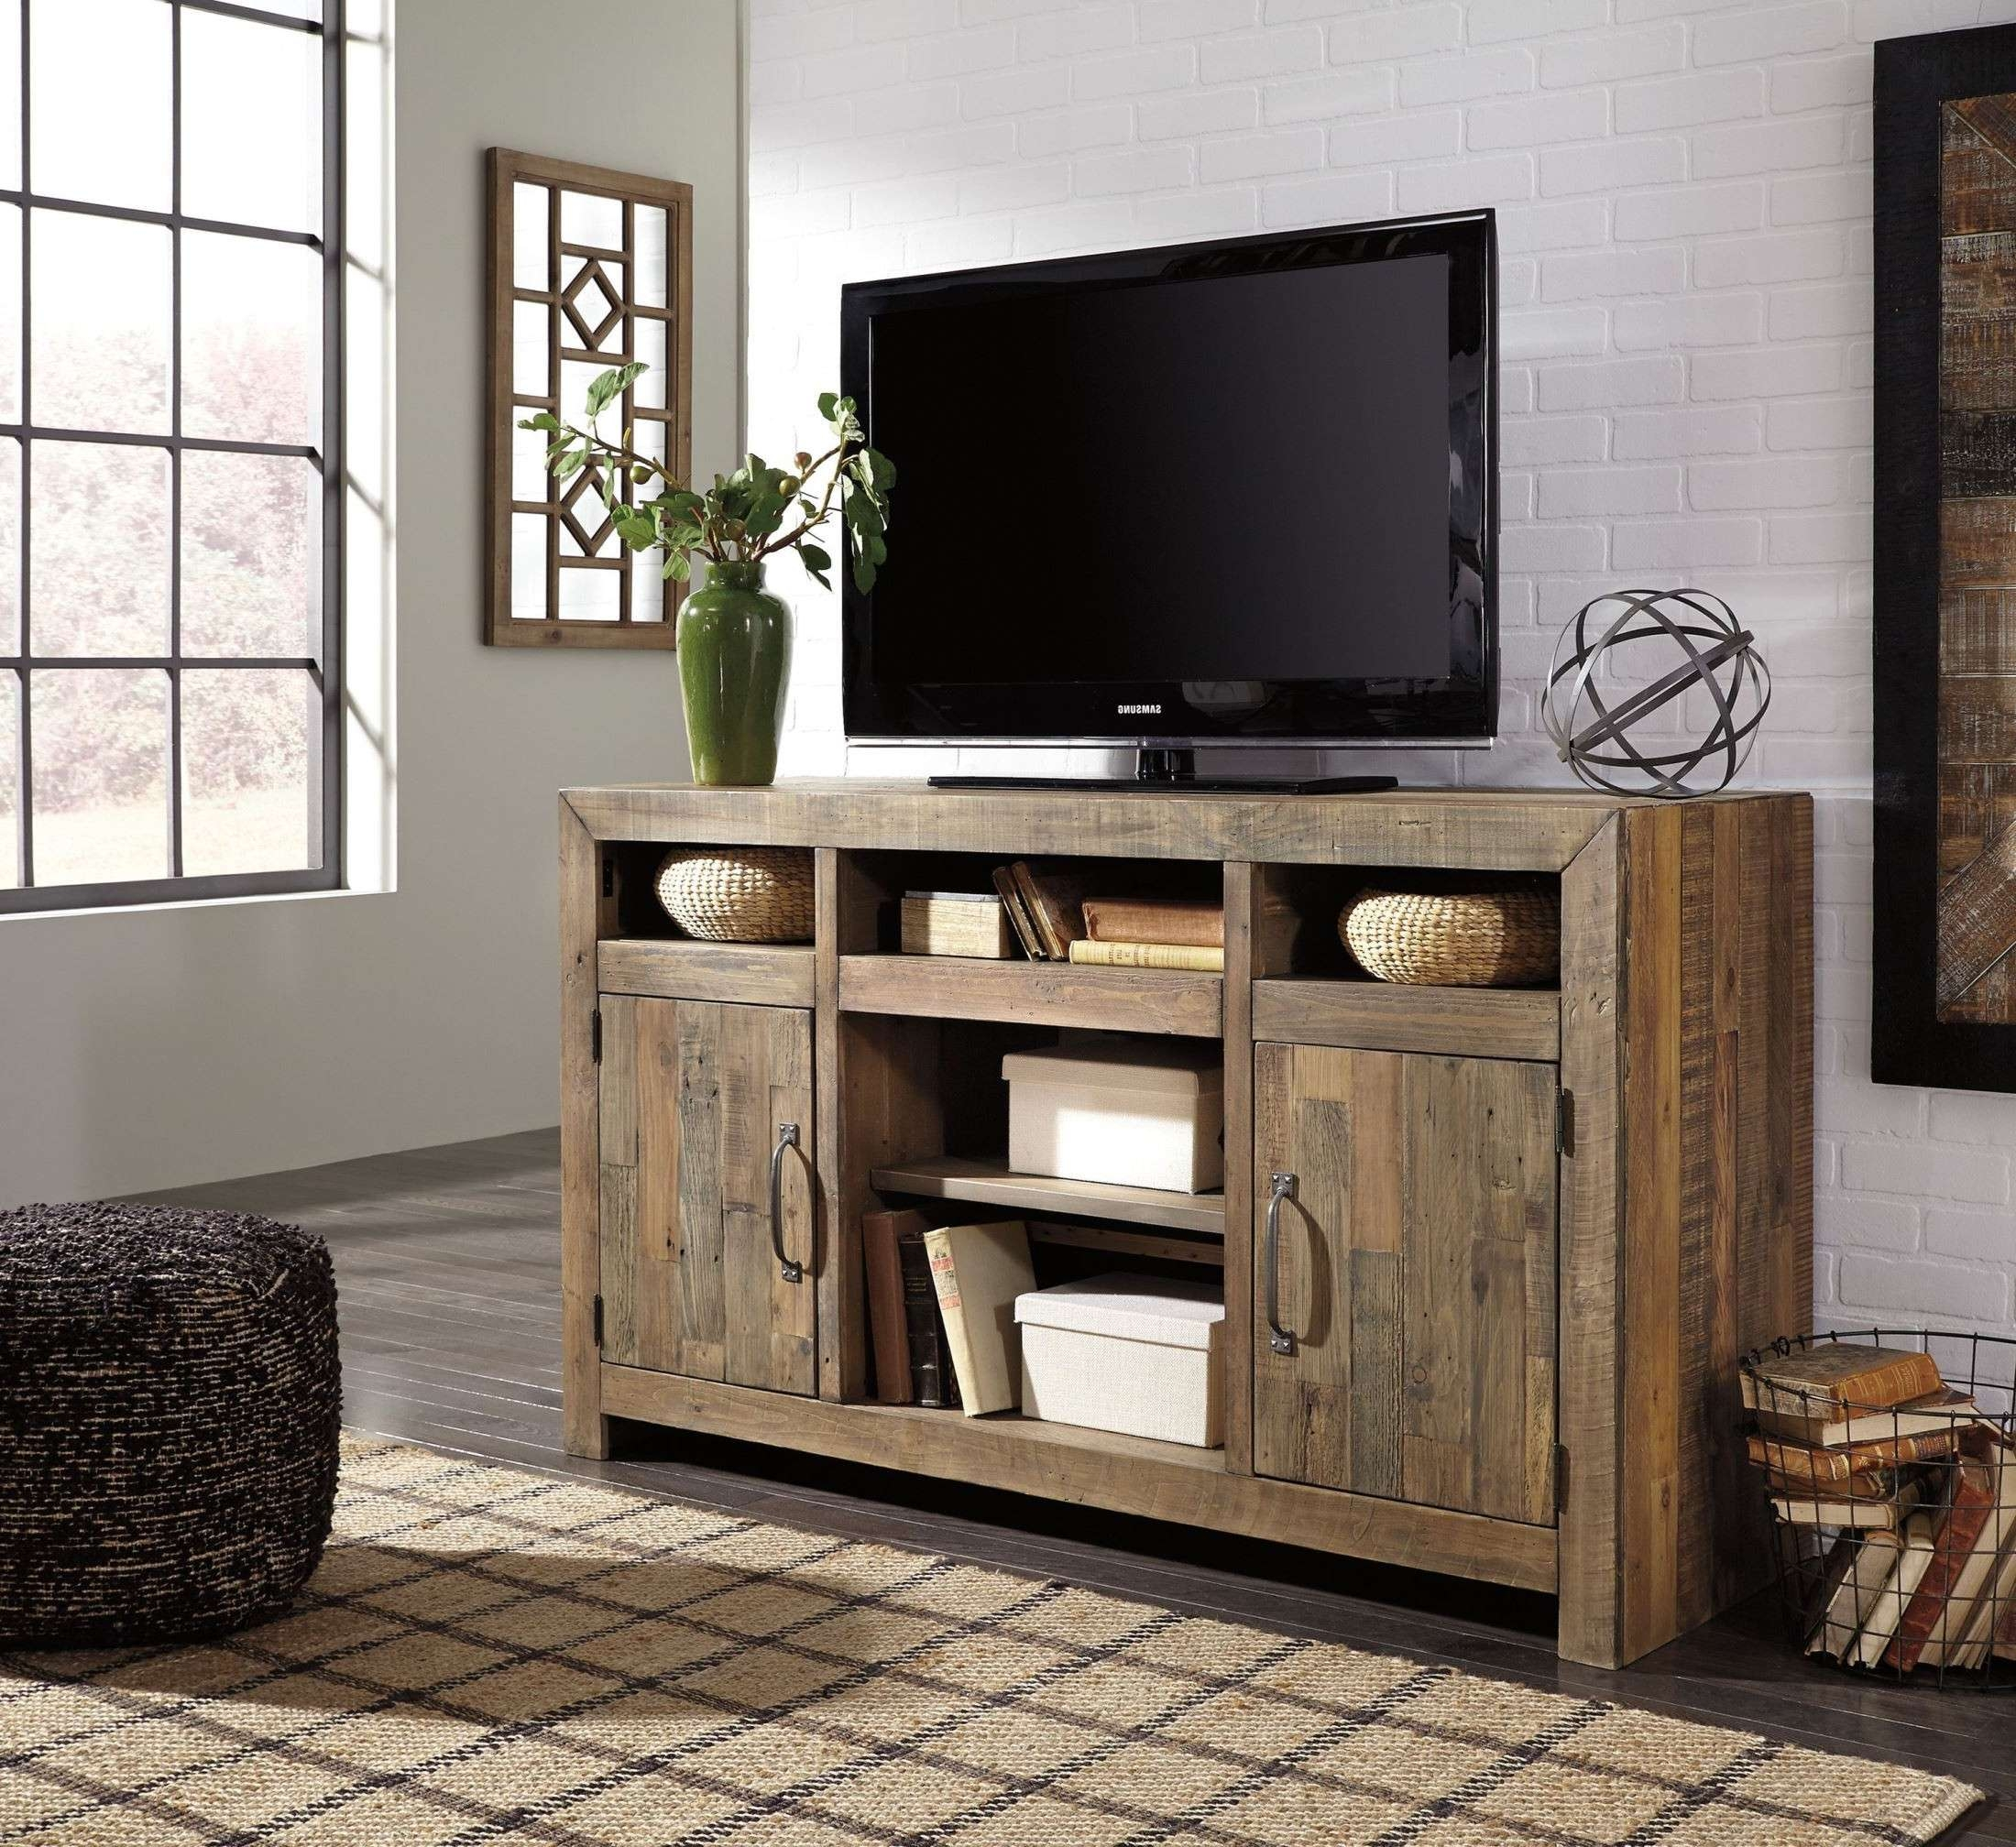 Sommerford Brown Tv Stand From Ashley | Coleman Furniture For Brown Tv Stands (View 19 of 20)